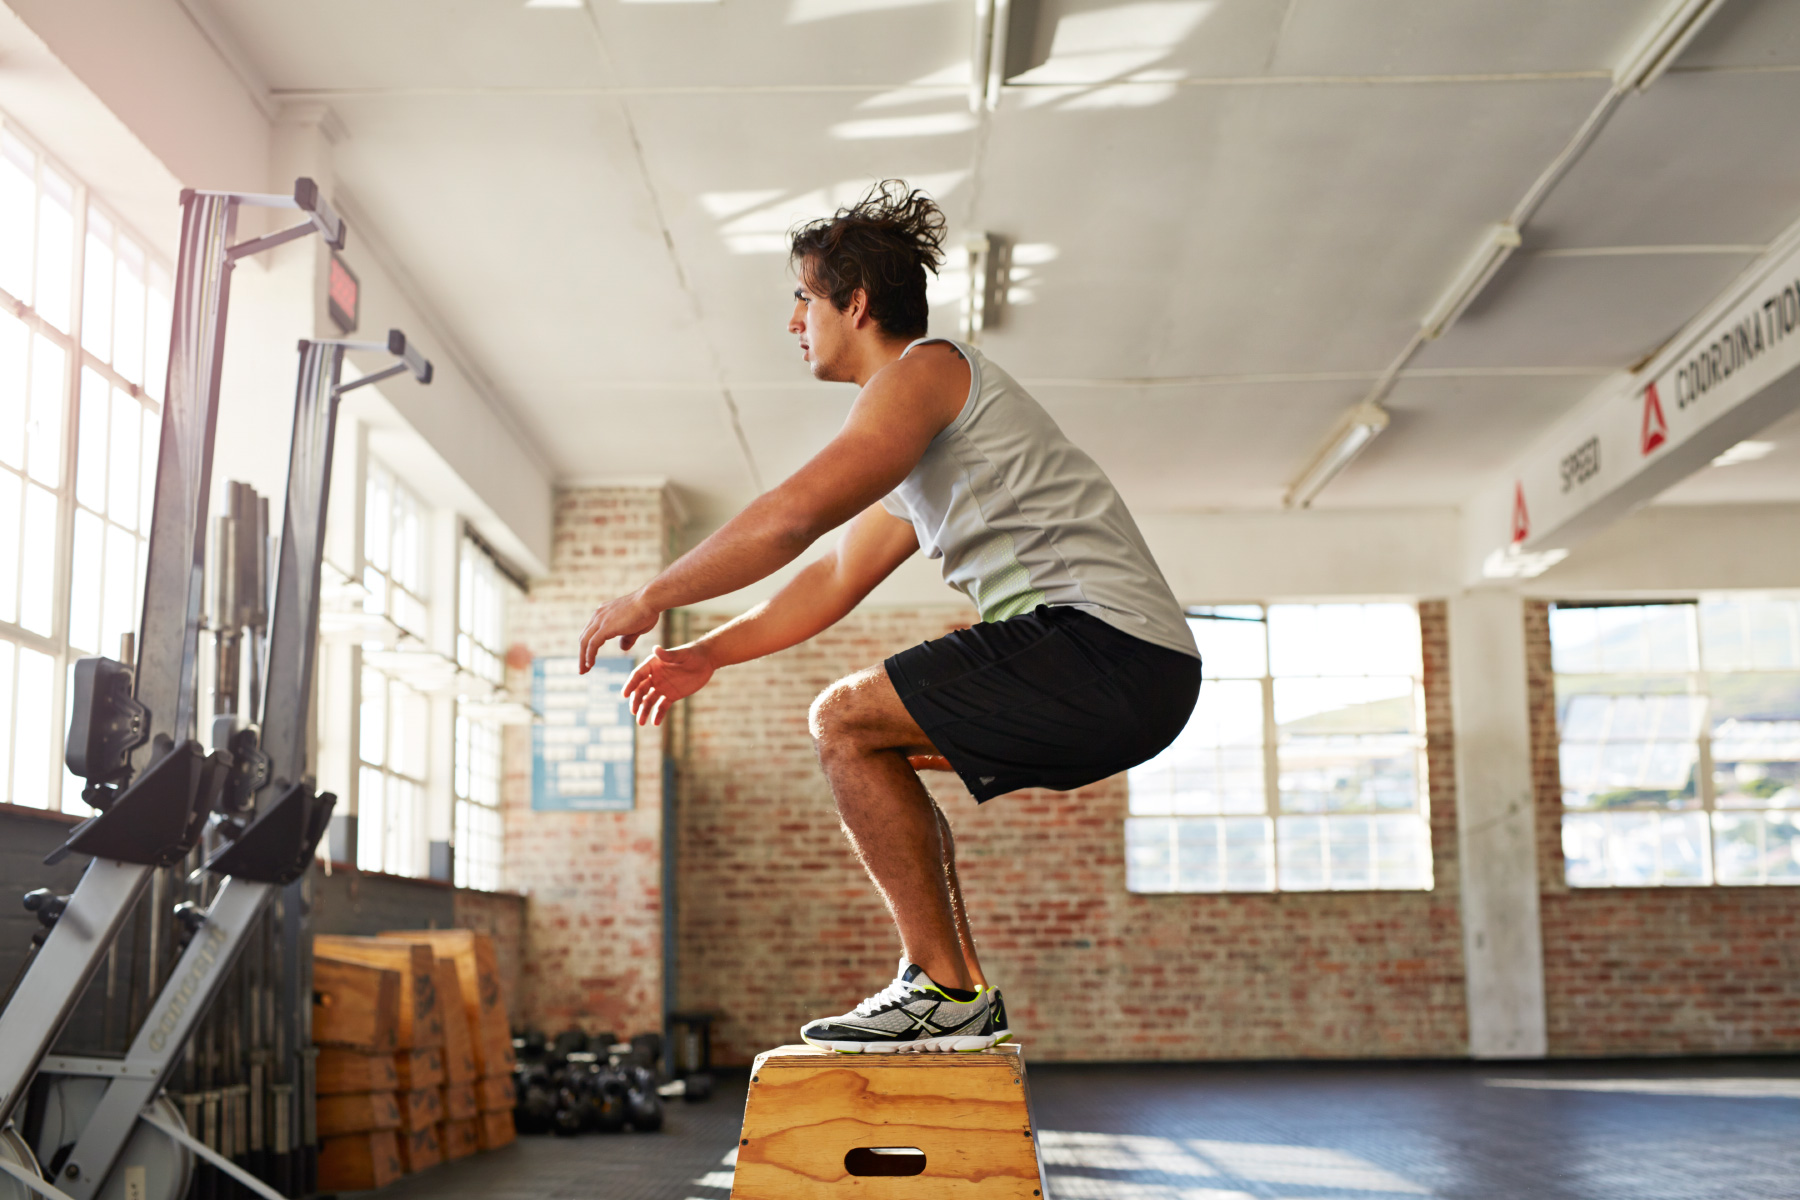 Man doing box jump in crossfit center